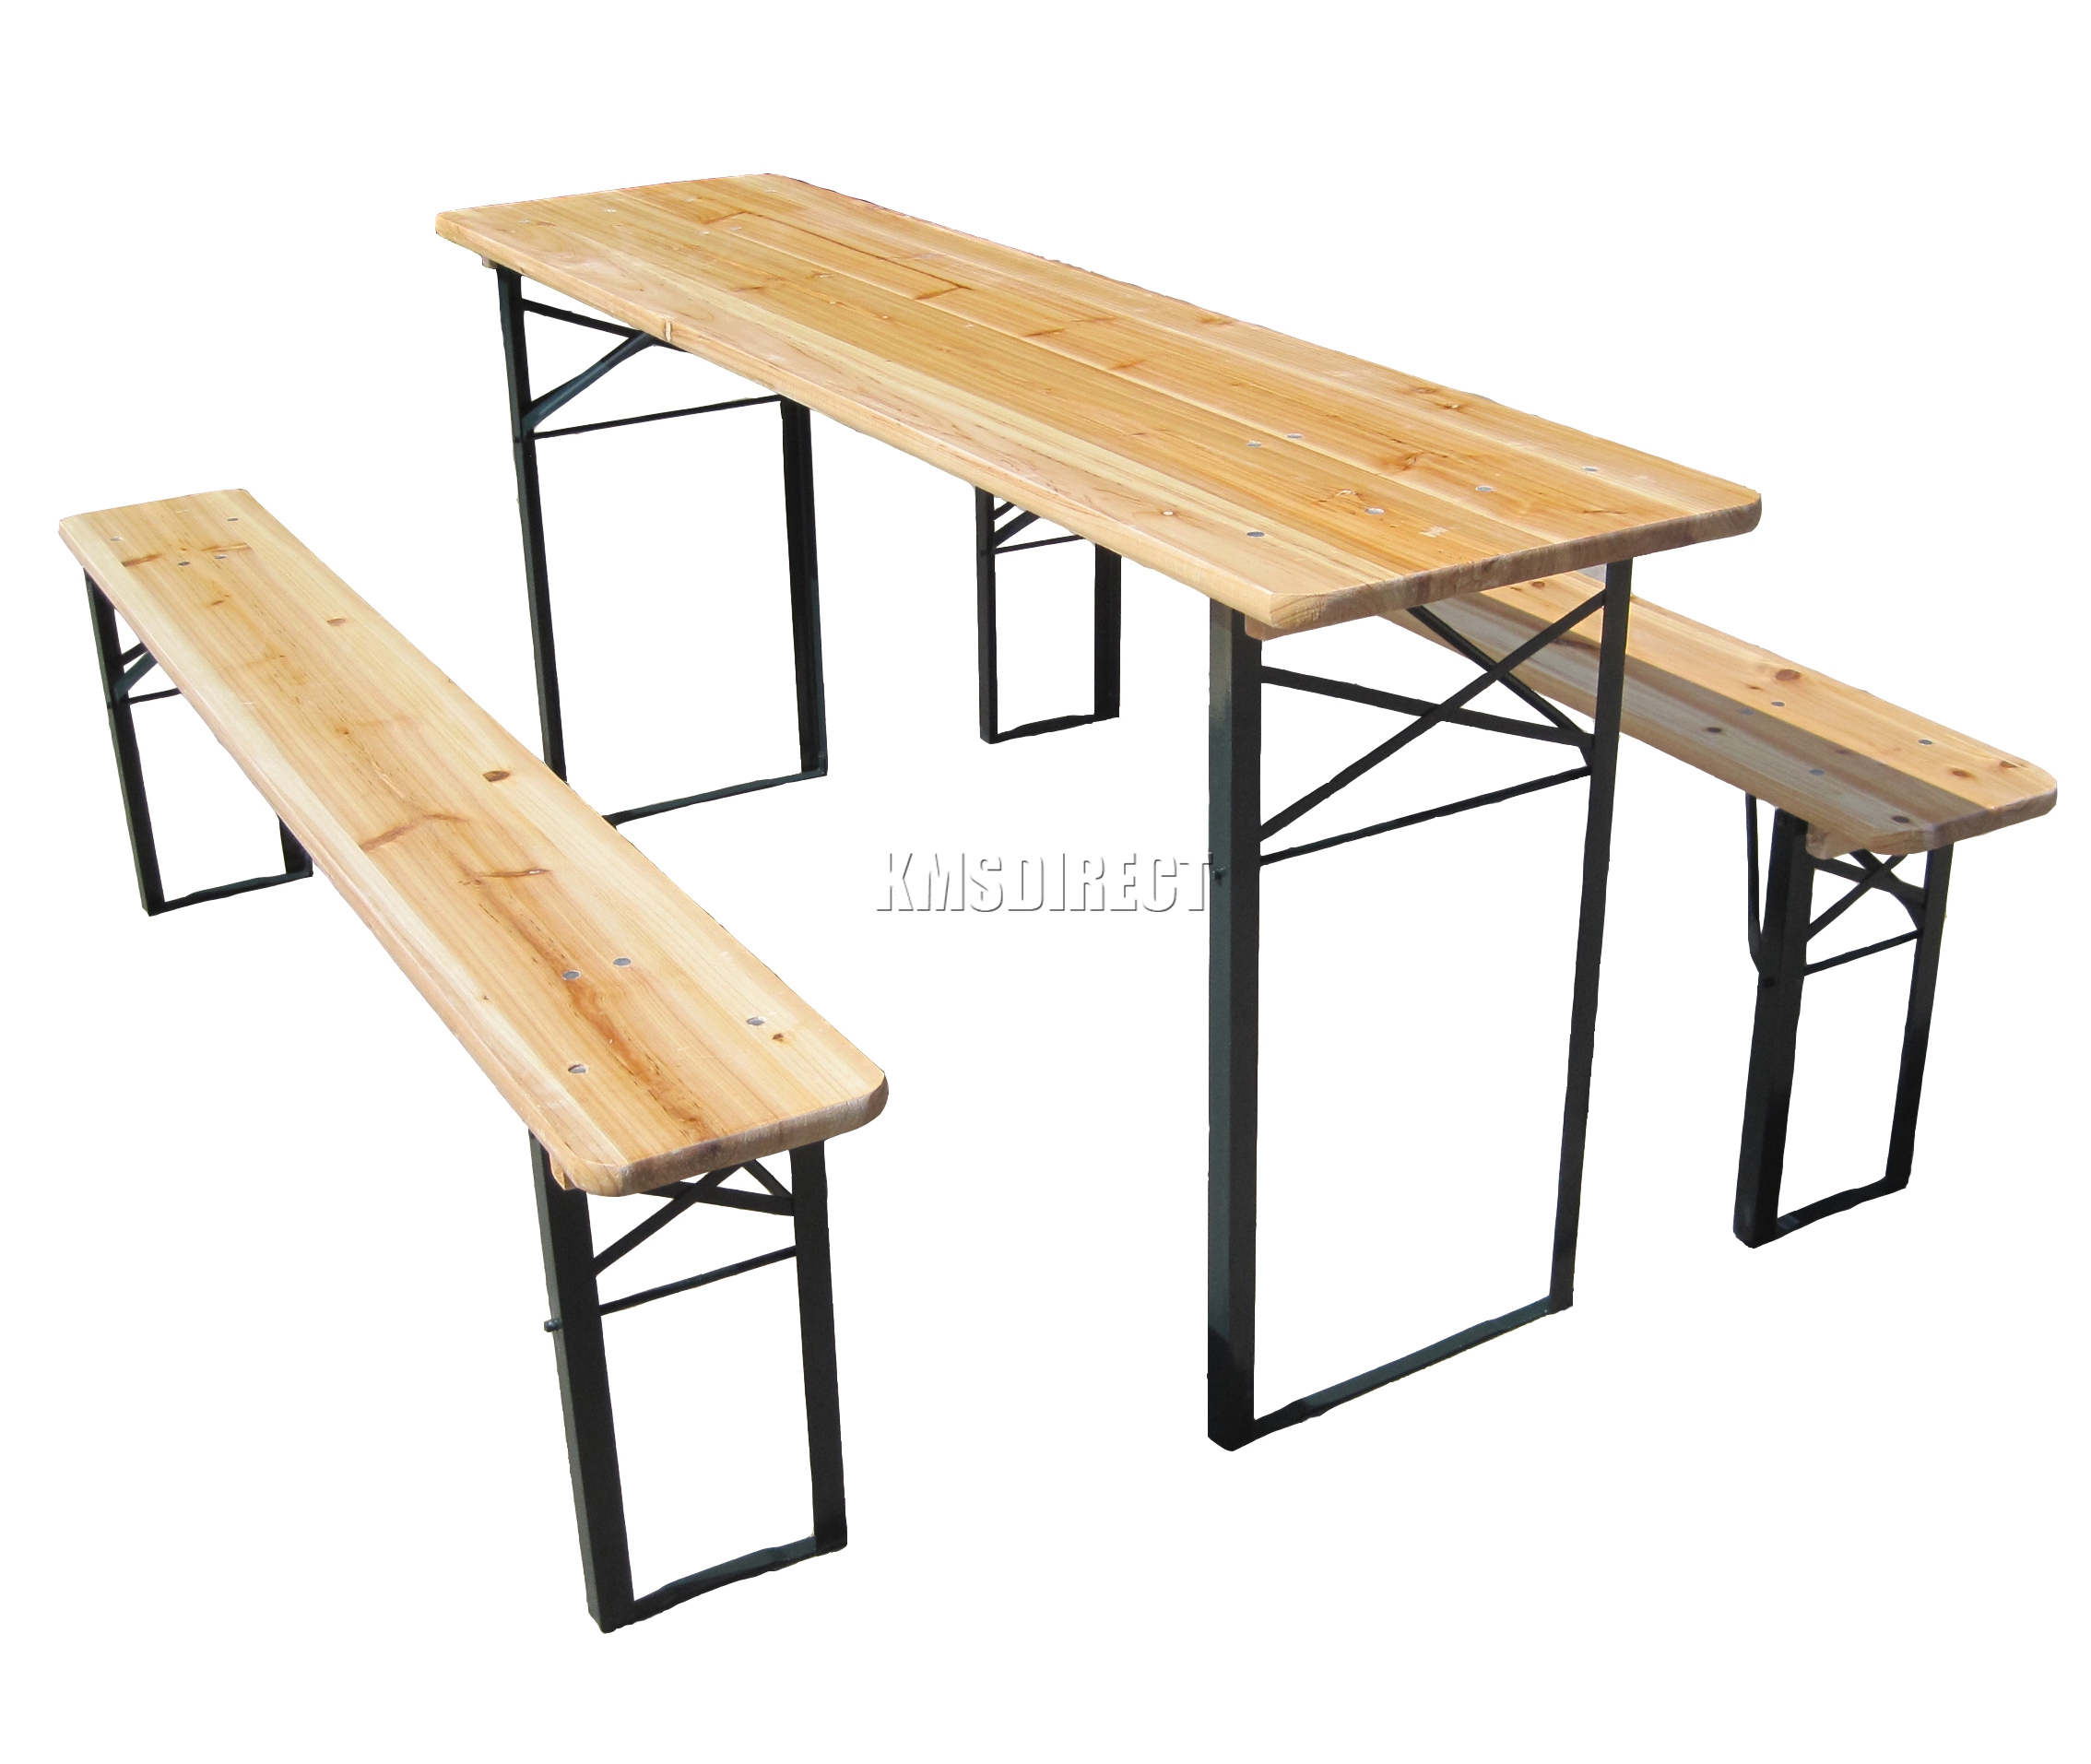 Outdoor Wooden Folding Beer Table Bench Set Trestle Garden